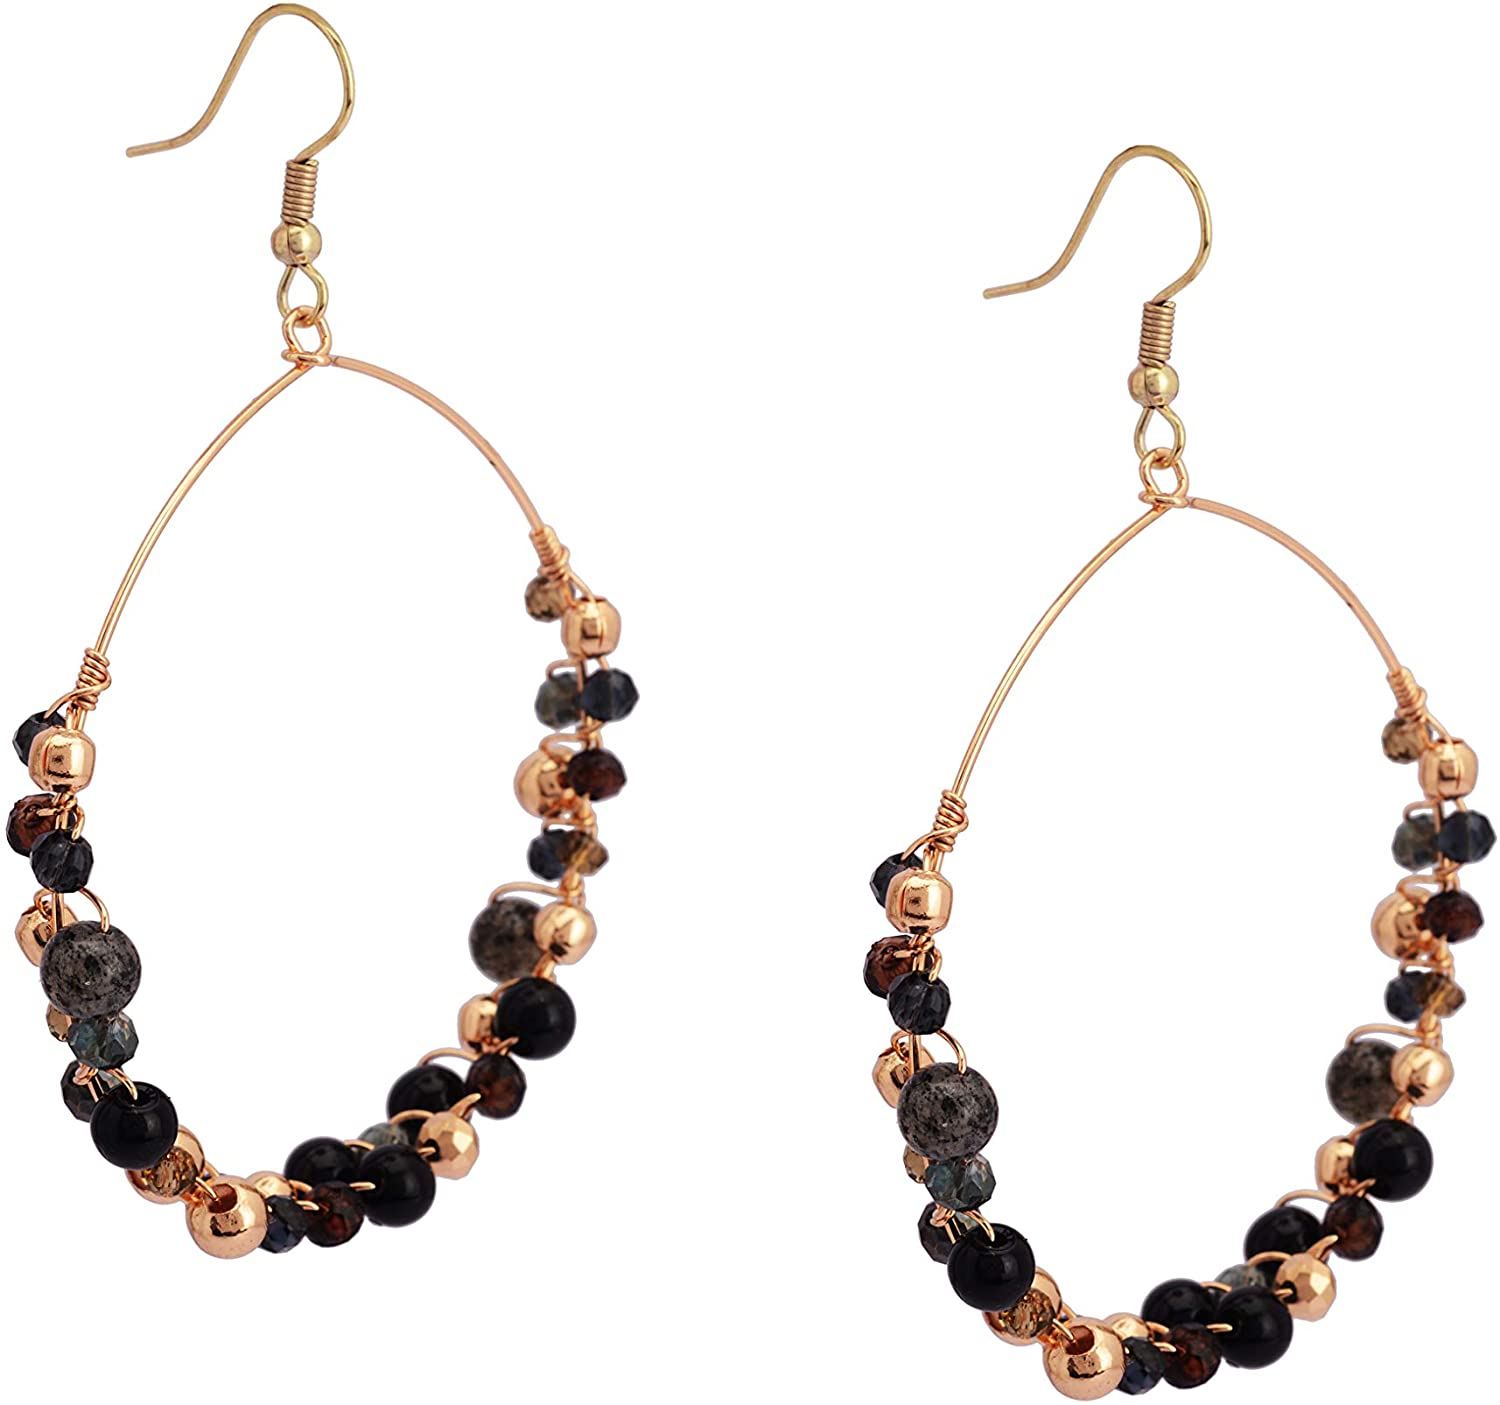 Zephyrr Bollywood Fashion Black Hoop Earring Jewelry For Women & Girls Trendy Hand Beaded Daily Wear Lightweight Casual Floral Hoops (JAE-4892)